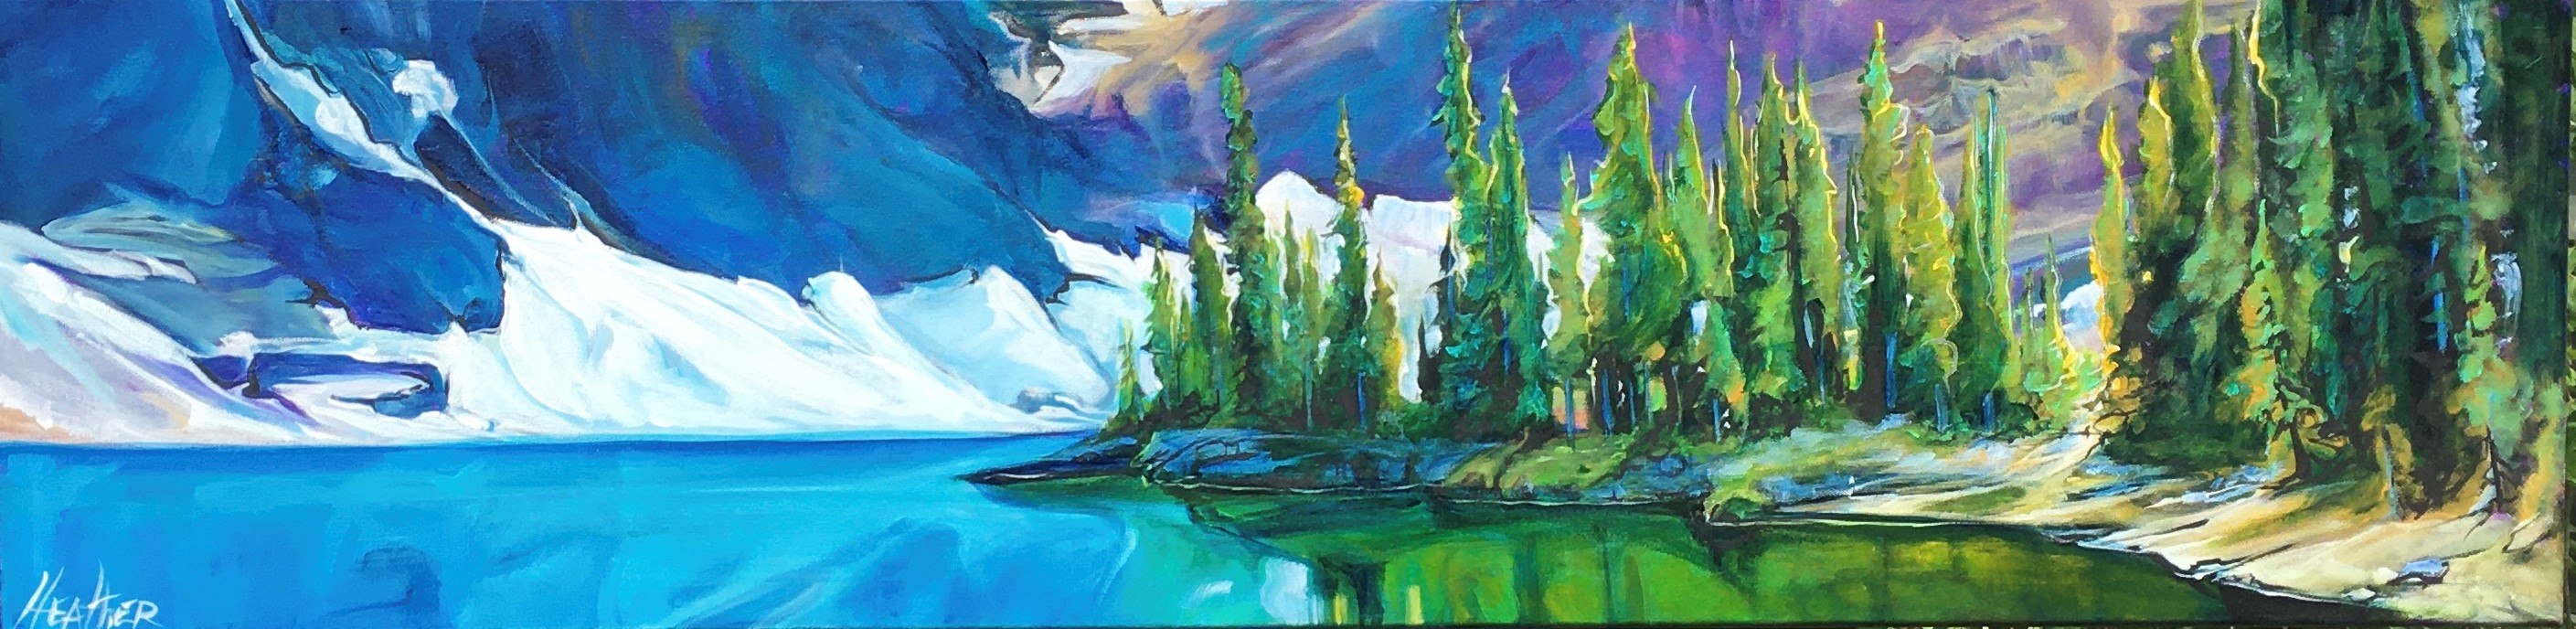 Floe Lake 12 x 48 Acrylics on Canvas SOLD